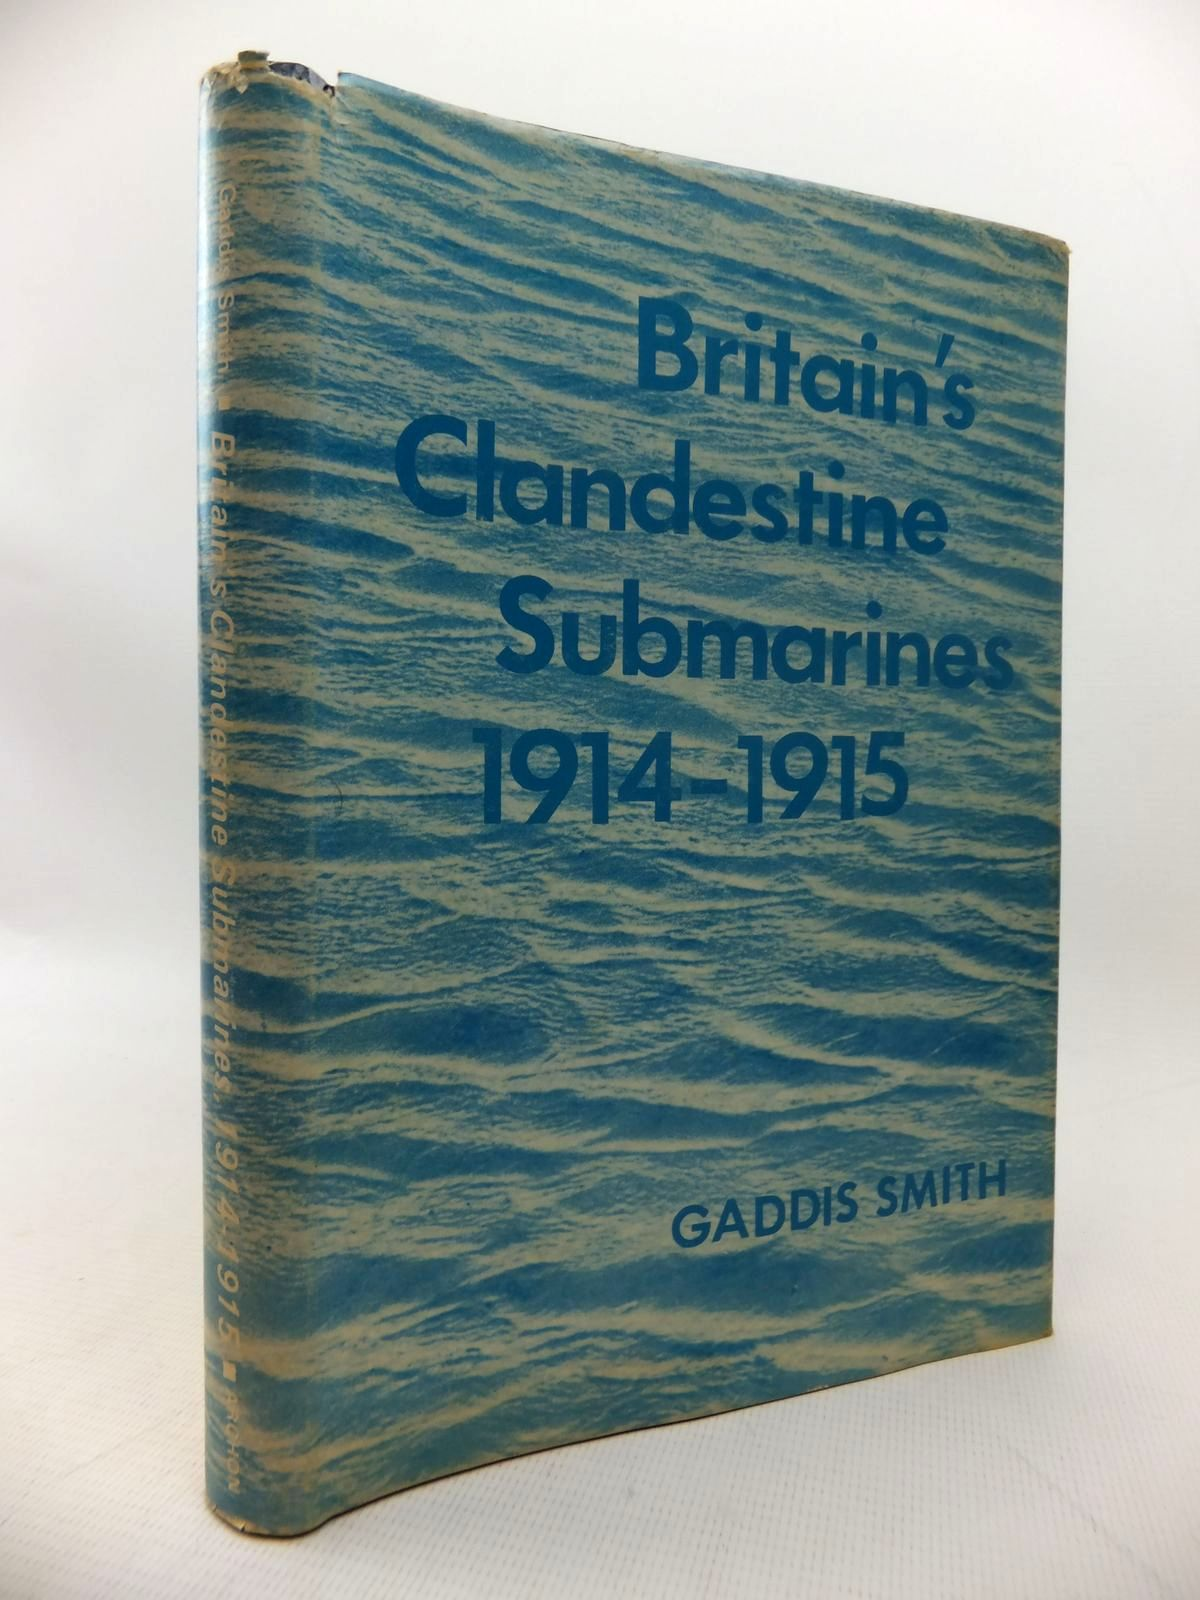 Photo of BRITAIN'S CLANDESTINE SUBMARINES 1914-1915 written by Smith, Gaddis published by Archon Books (STOCK CODE: 1814221)  for sale by Stella & Rose's Books